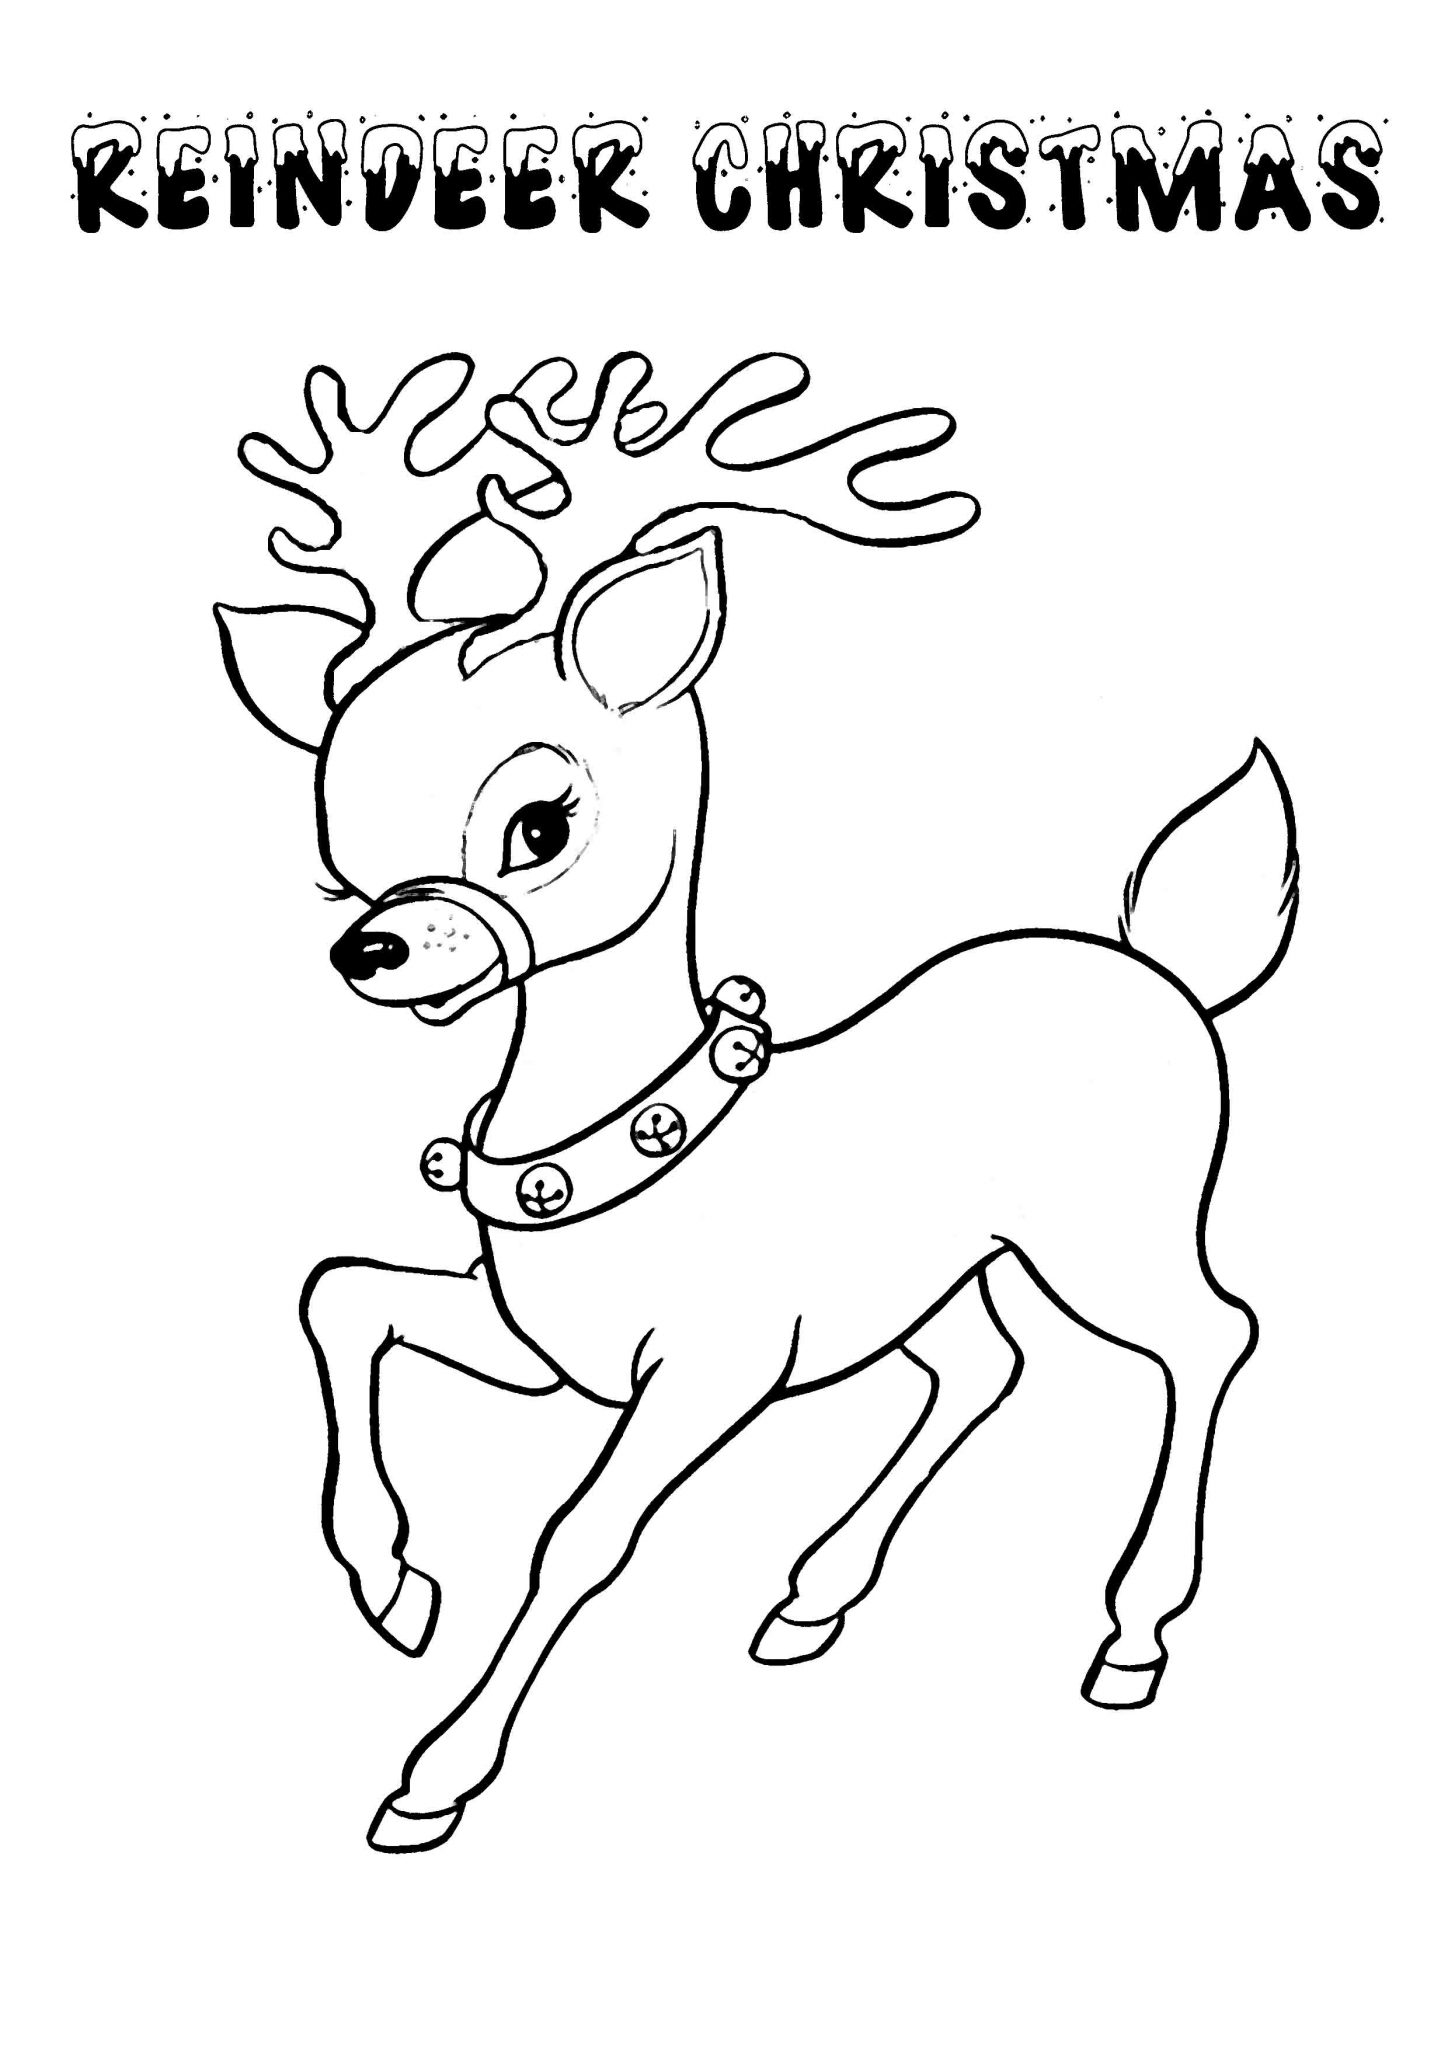 childrens christmas colouring printable christmas coloring pages for kids best apps christmas childrens colouring